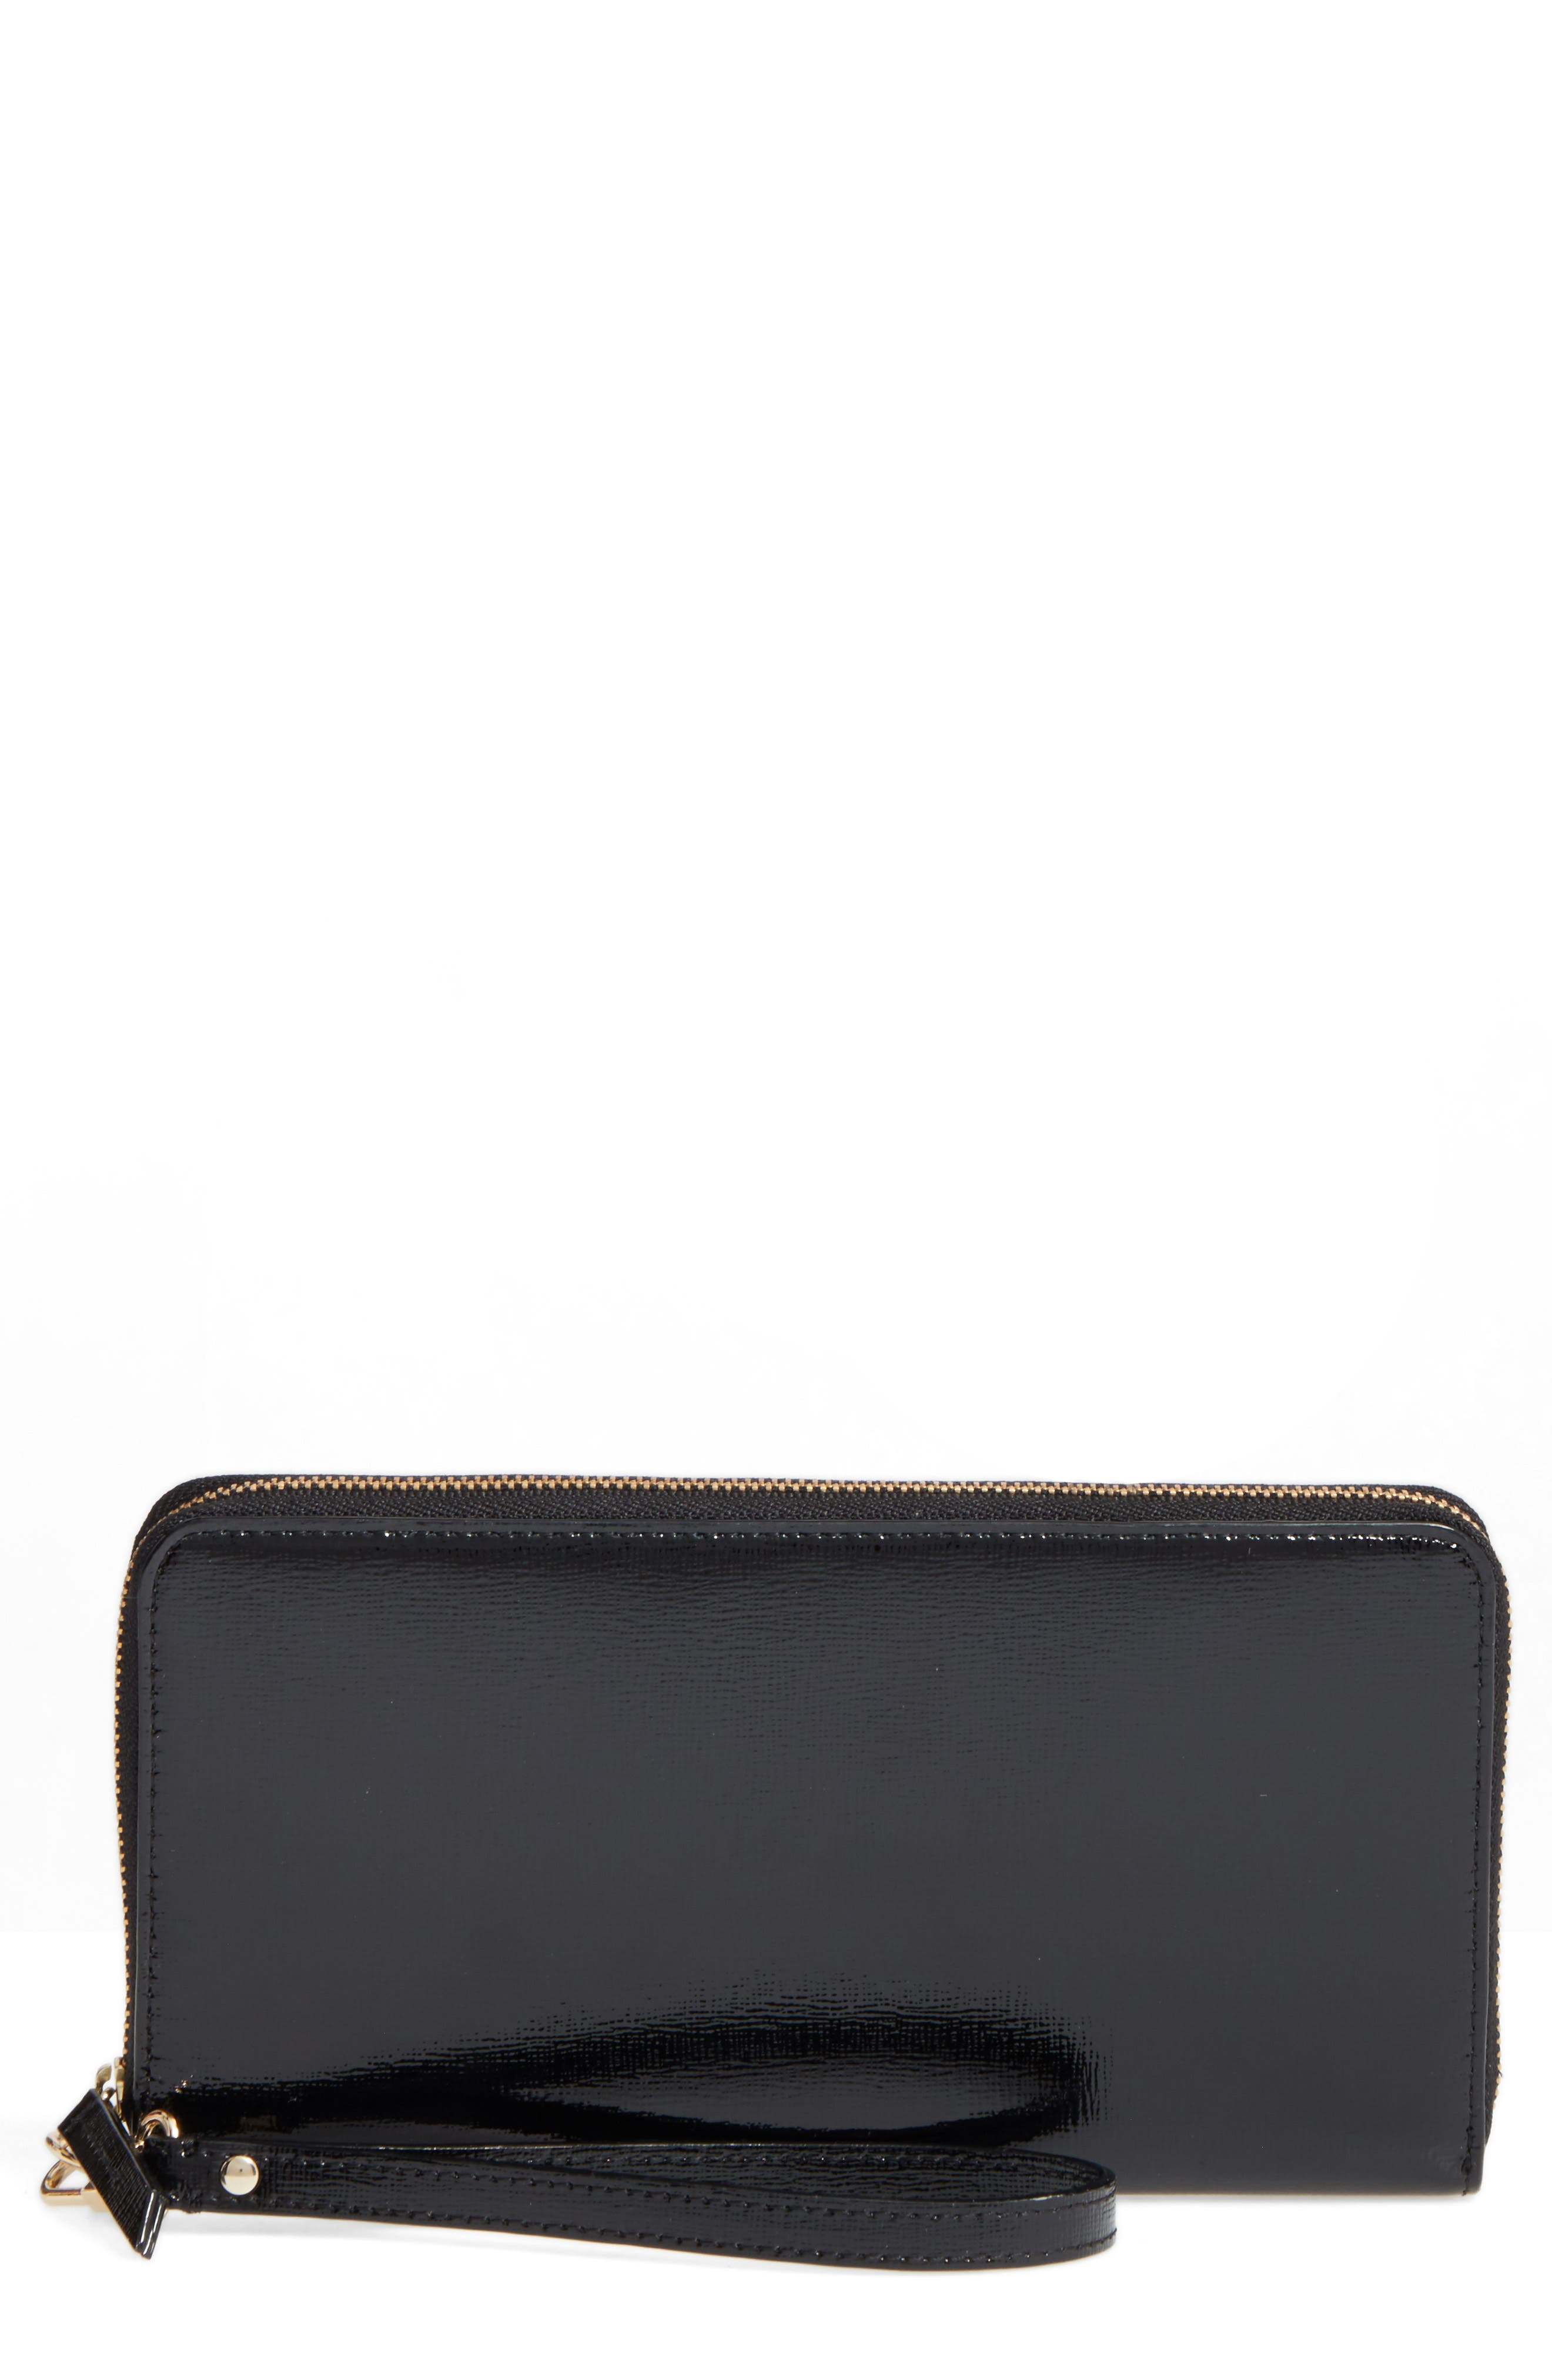 Nordstrom Slim Leather Wallet